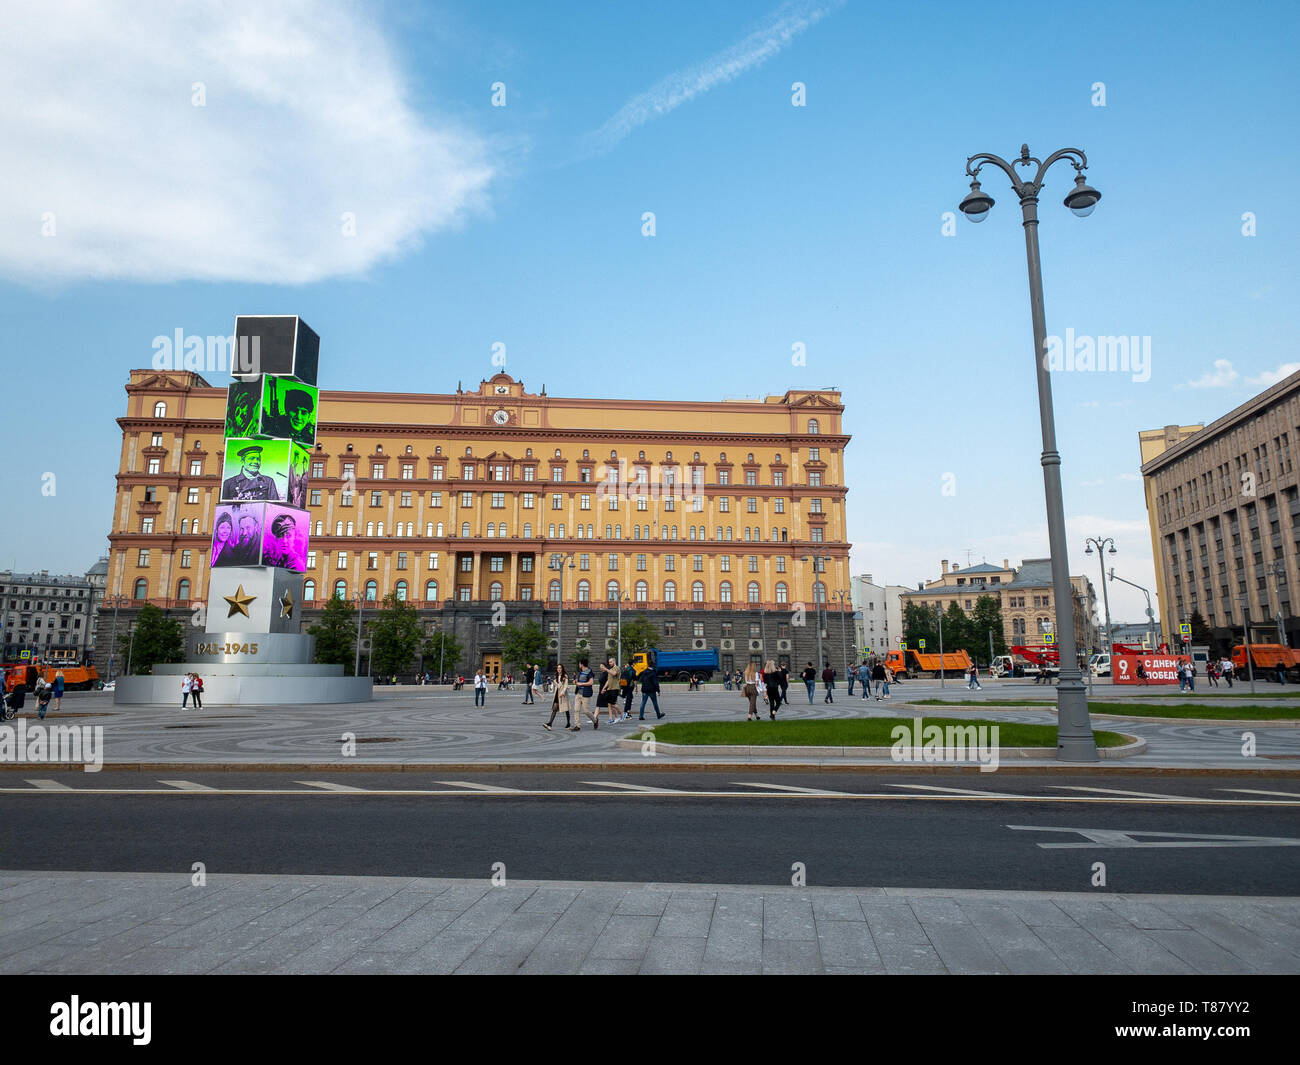 Moscow Russia May 9, 2019 Lubyanka Building Victory Day Headquarters of the Federal Security Service of the Russian Federation FSB ex-KGB old building - Stock Image